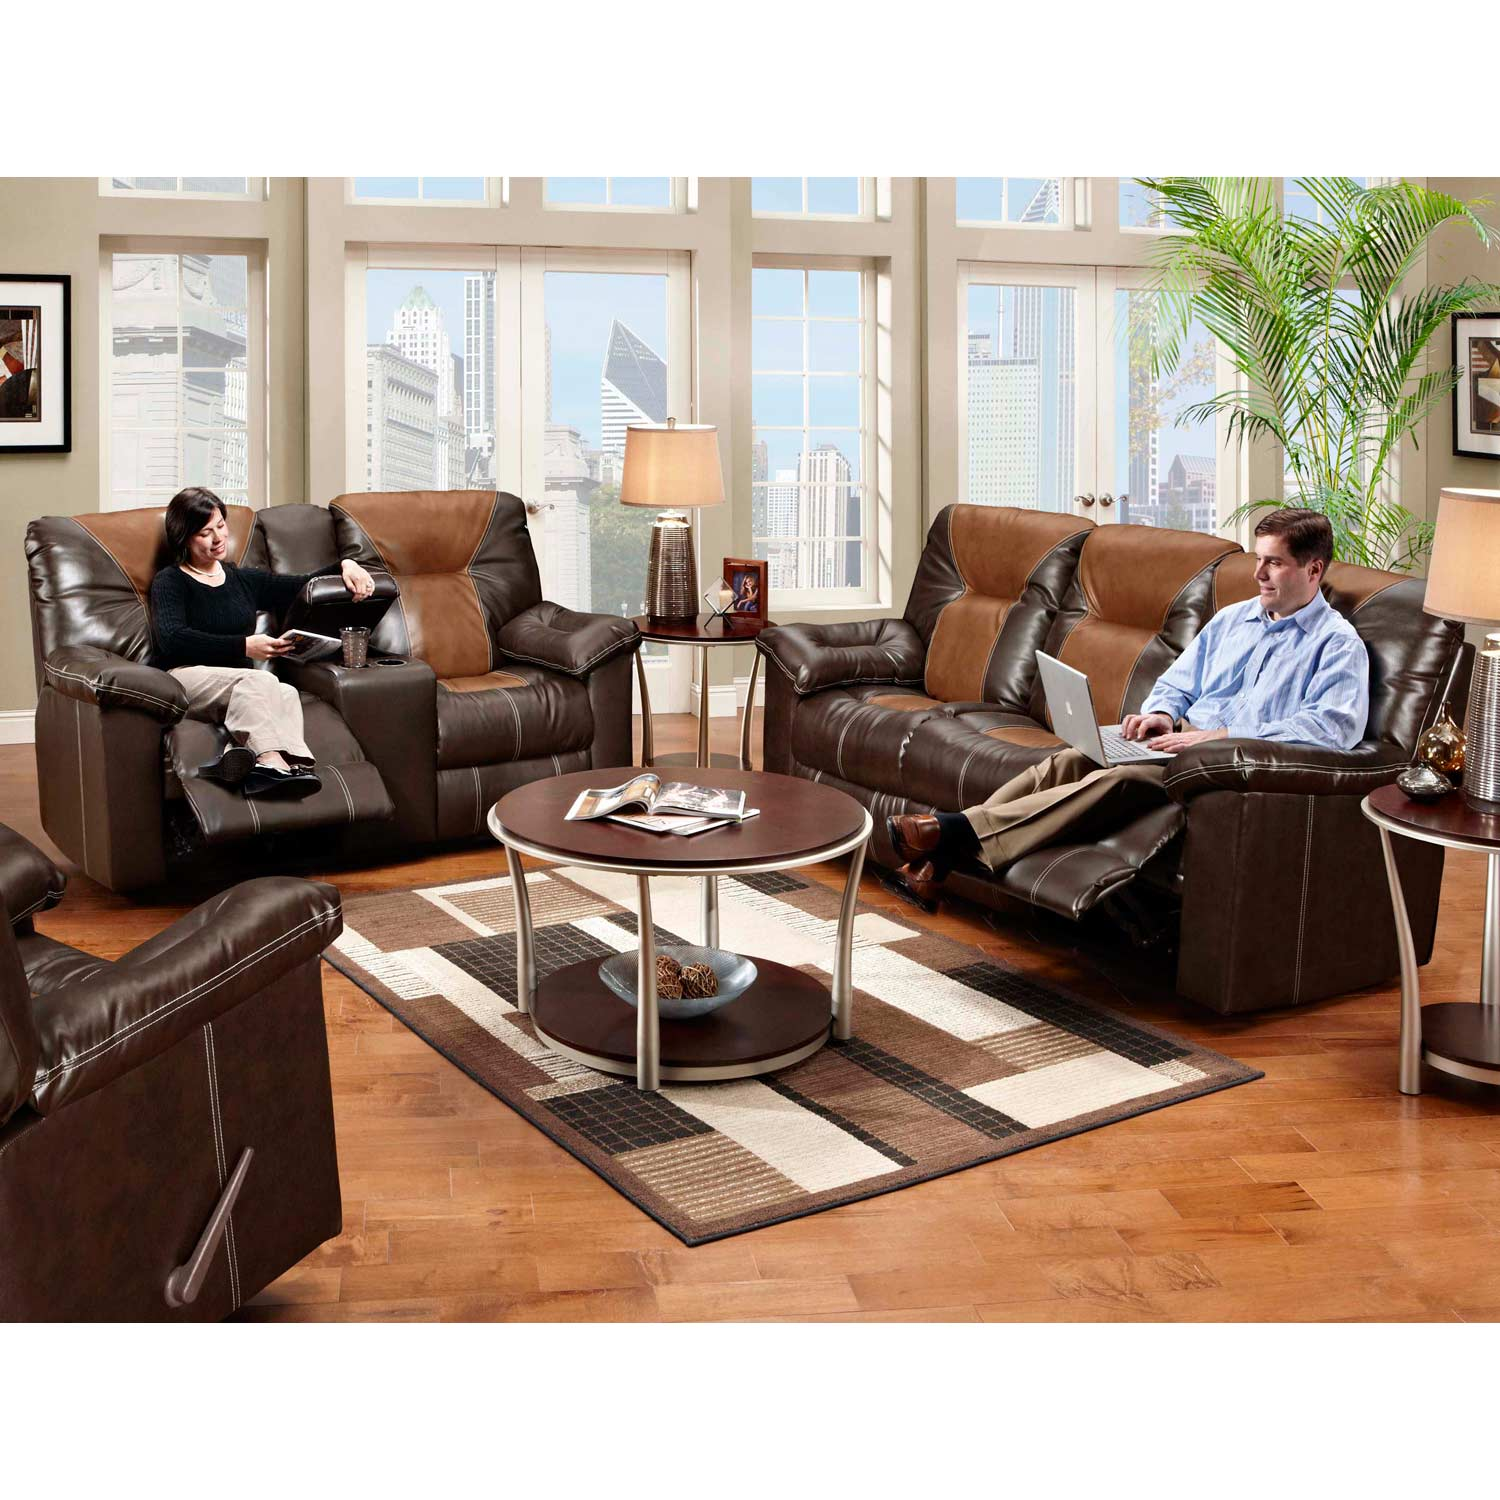 Greensboro Two-Toned Double Reclining Sofa - Contrast Stitching - CHF-595150-61